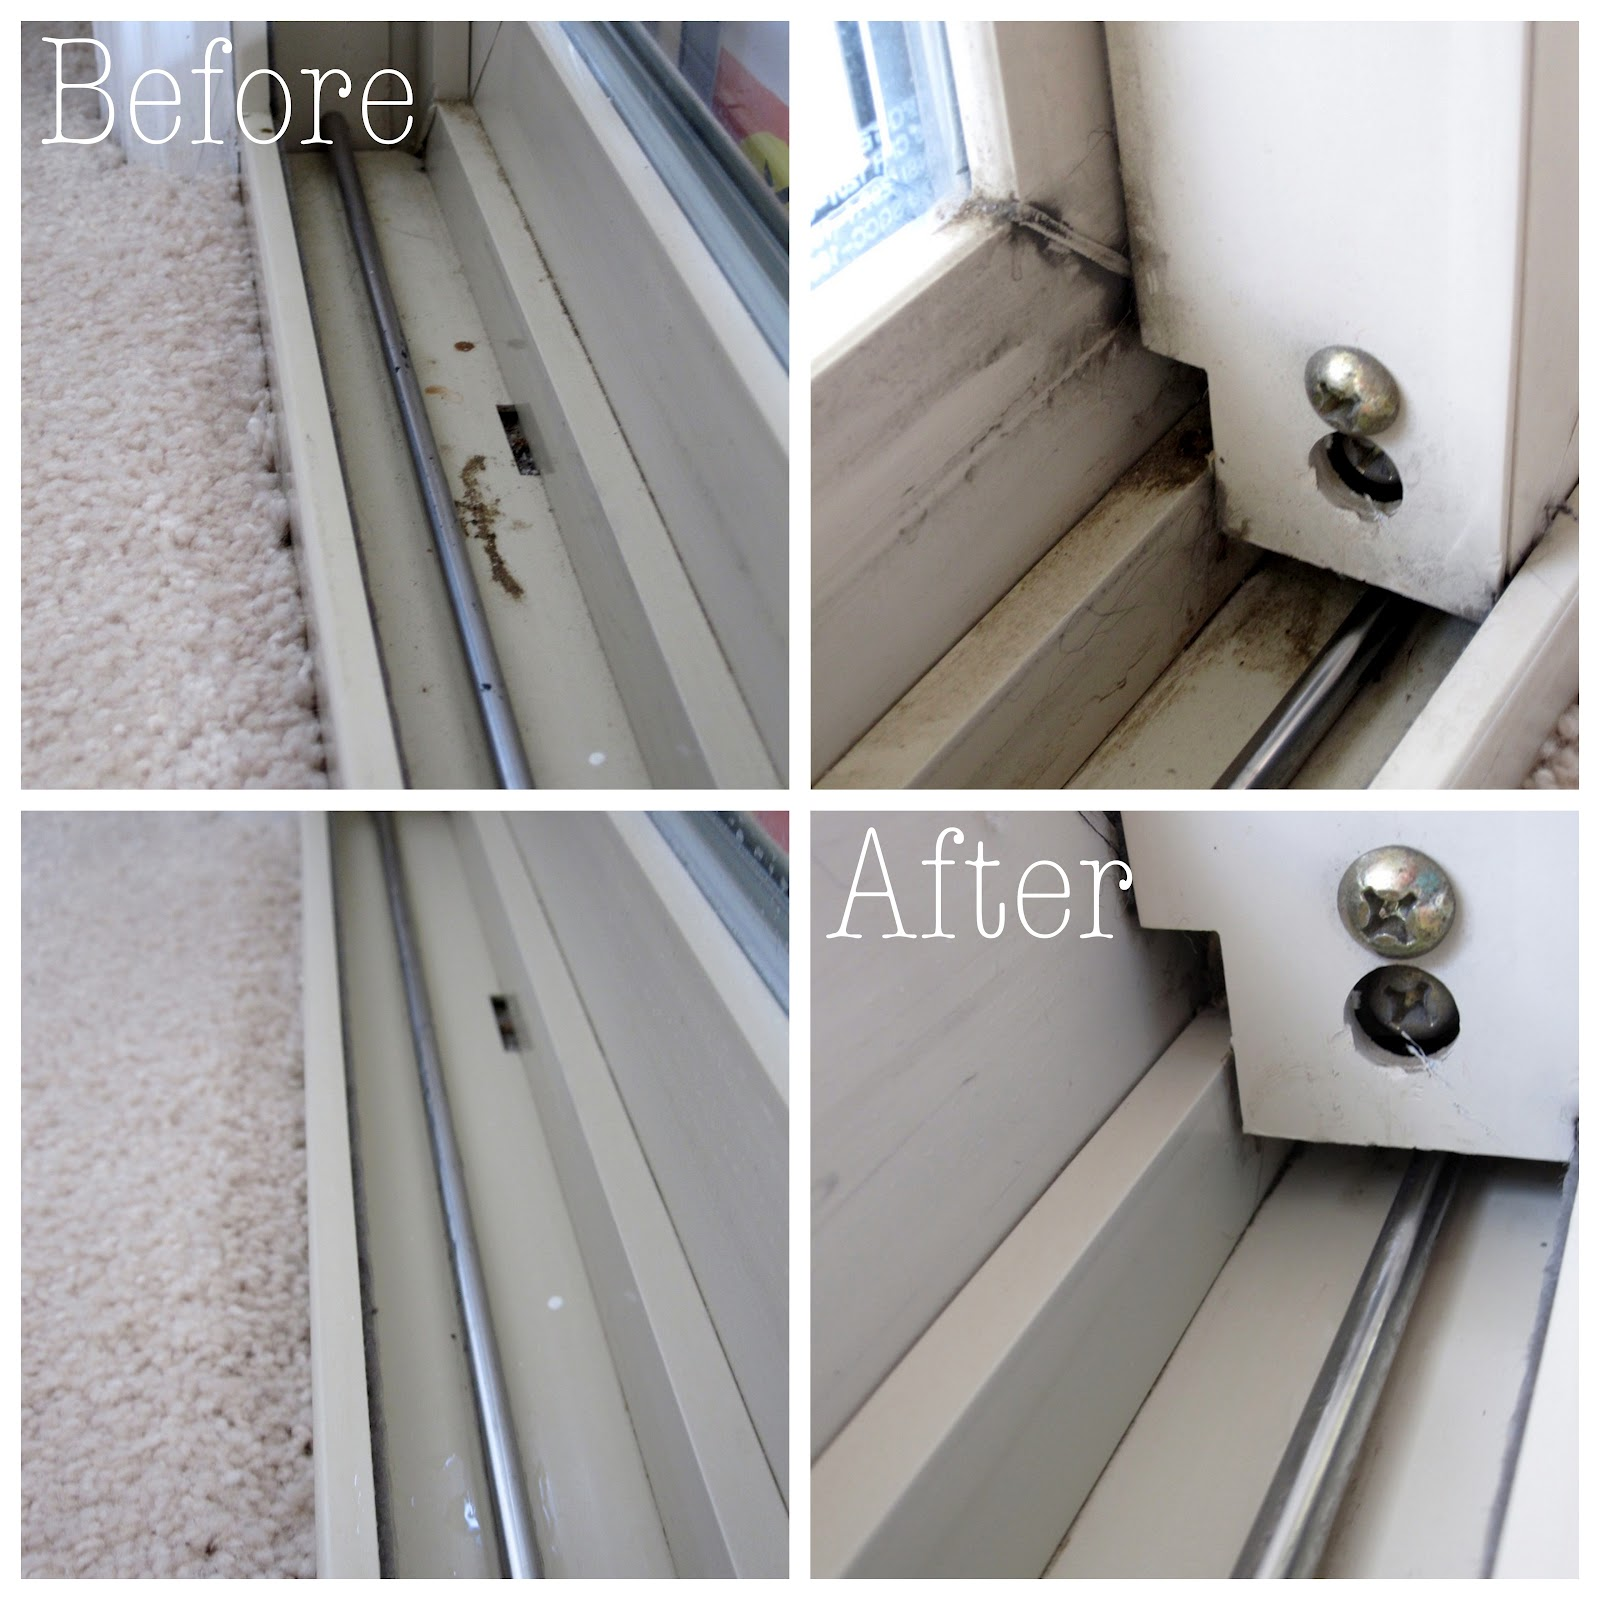 How to clean windows like the professionals do www for How to clean windows